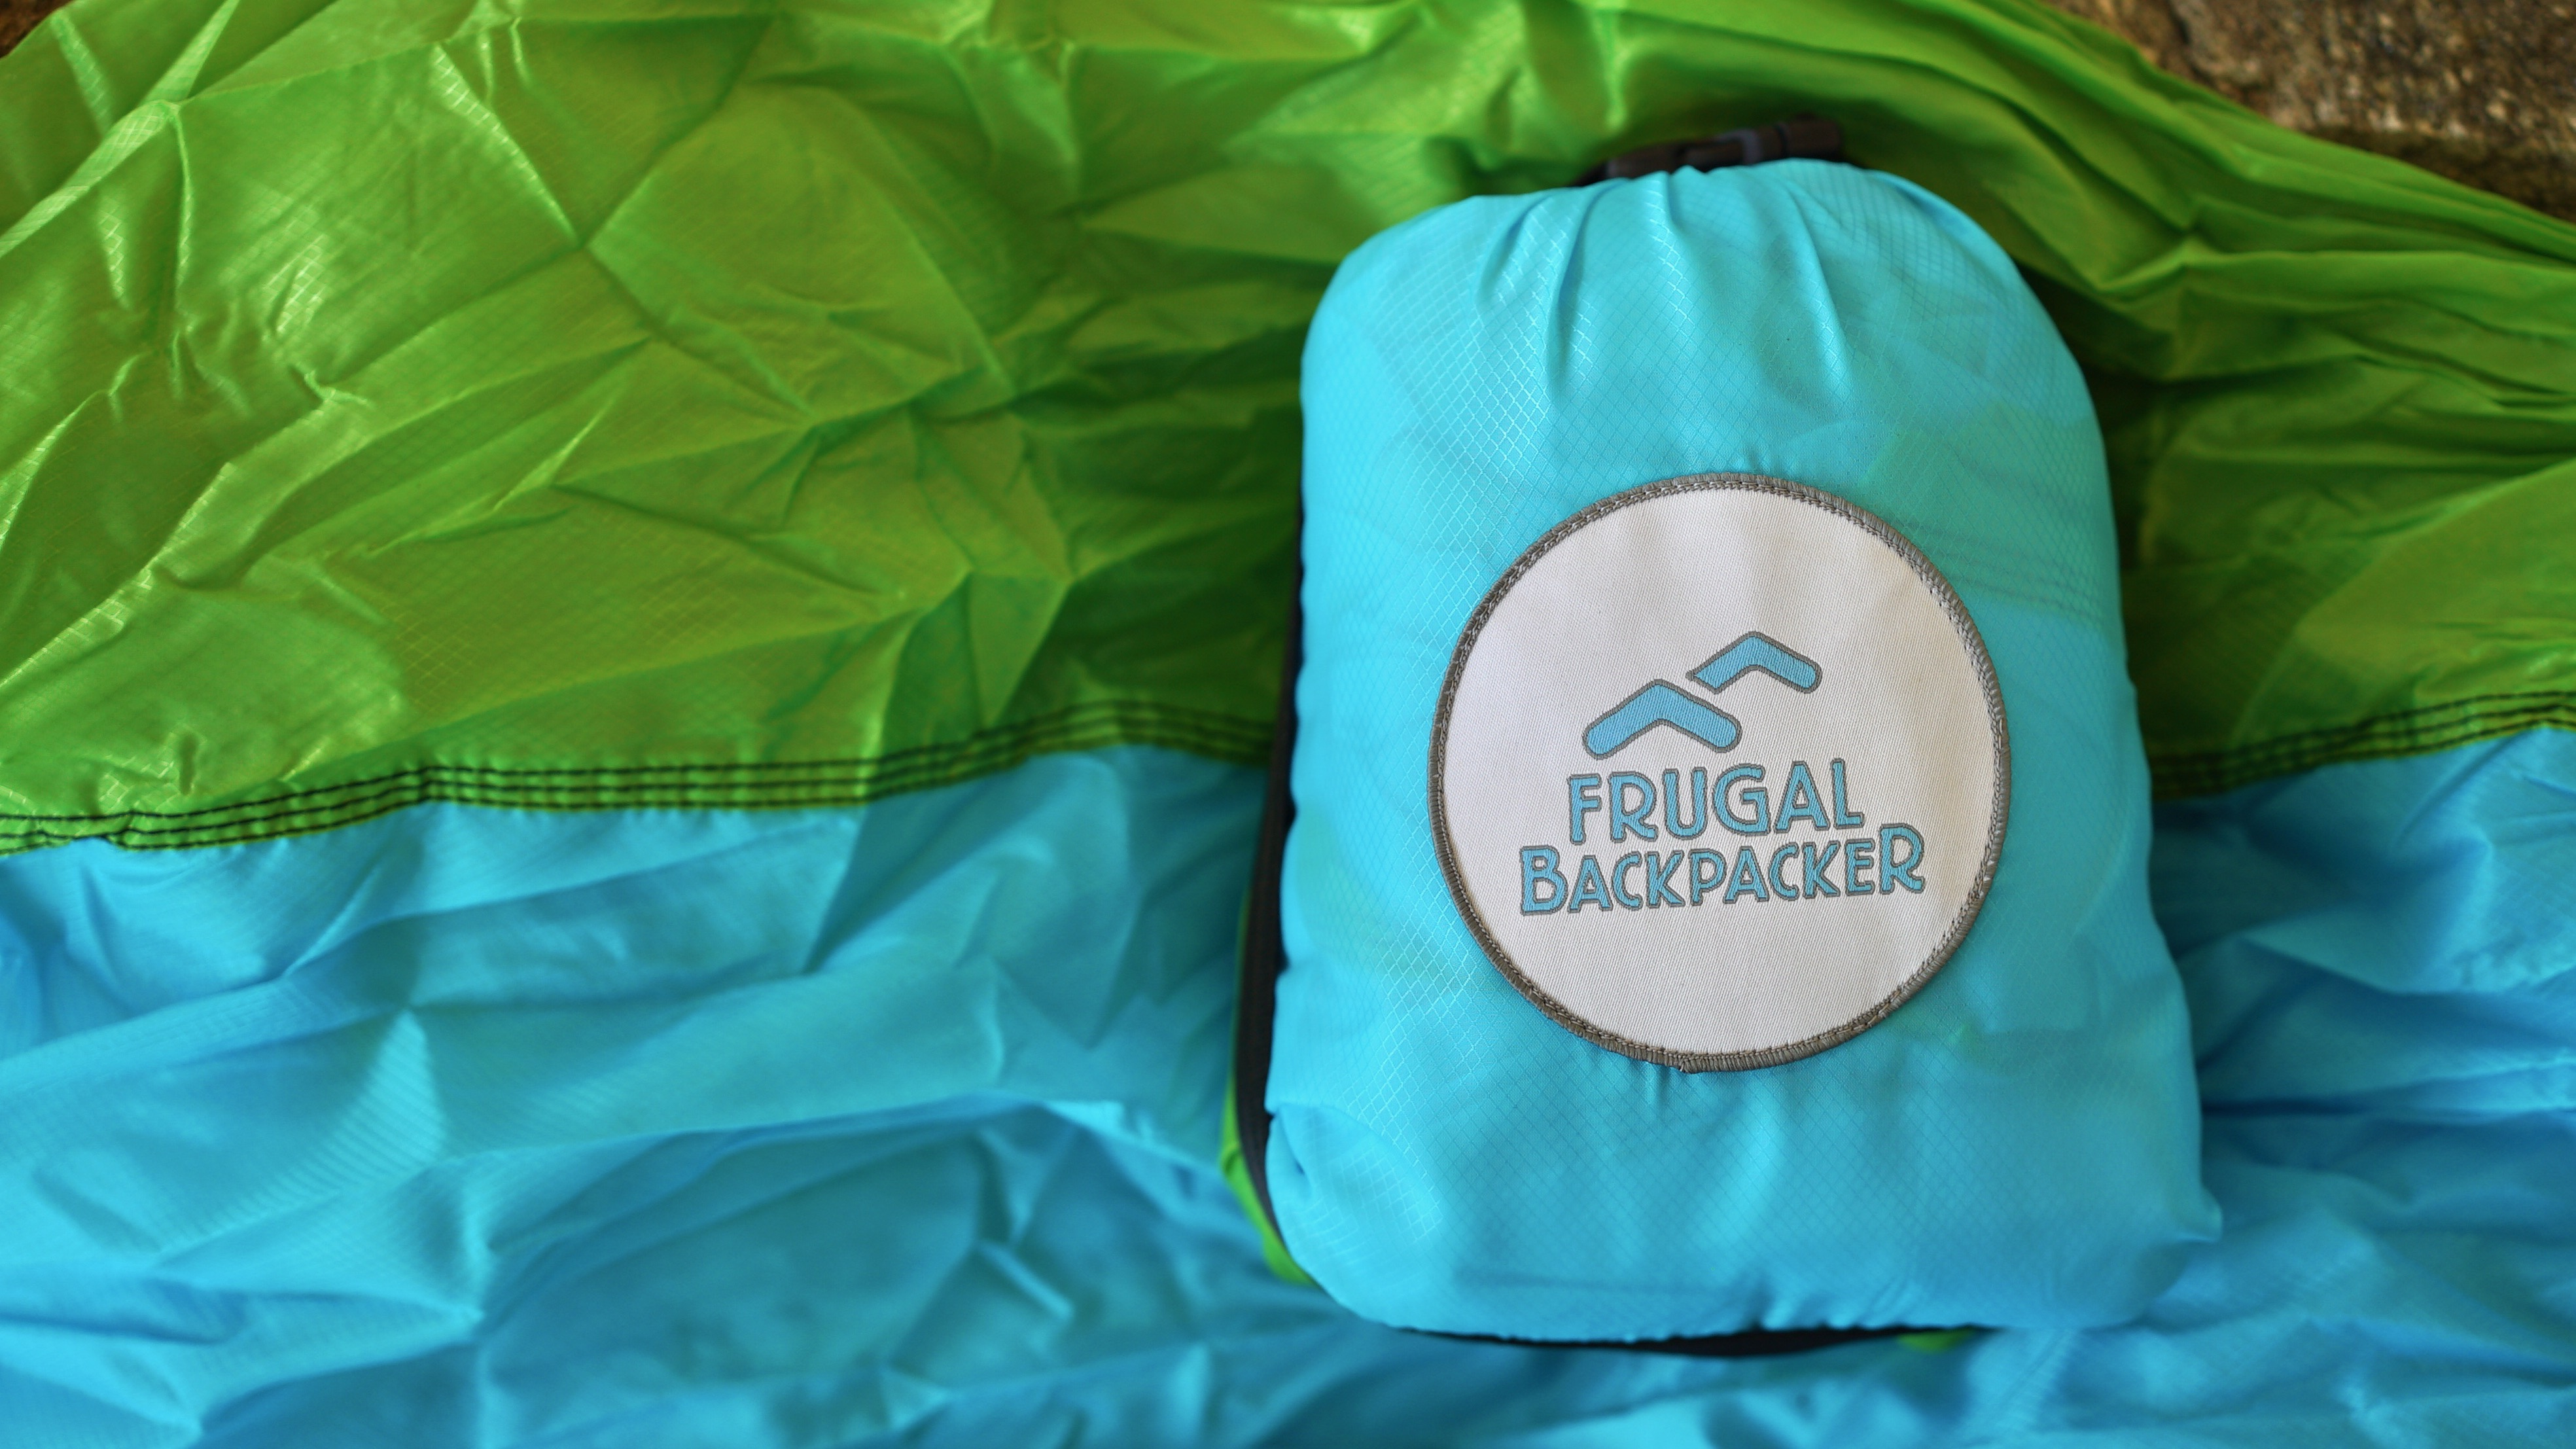 Frugal Backpacker